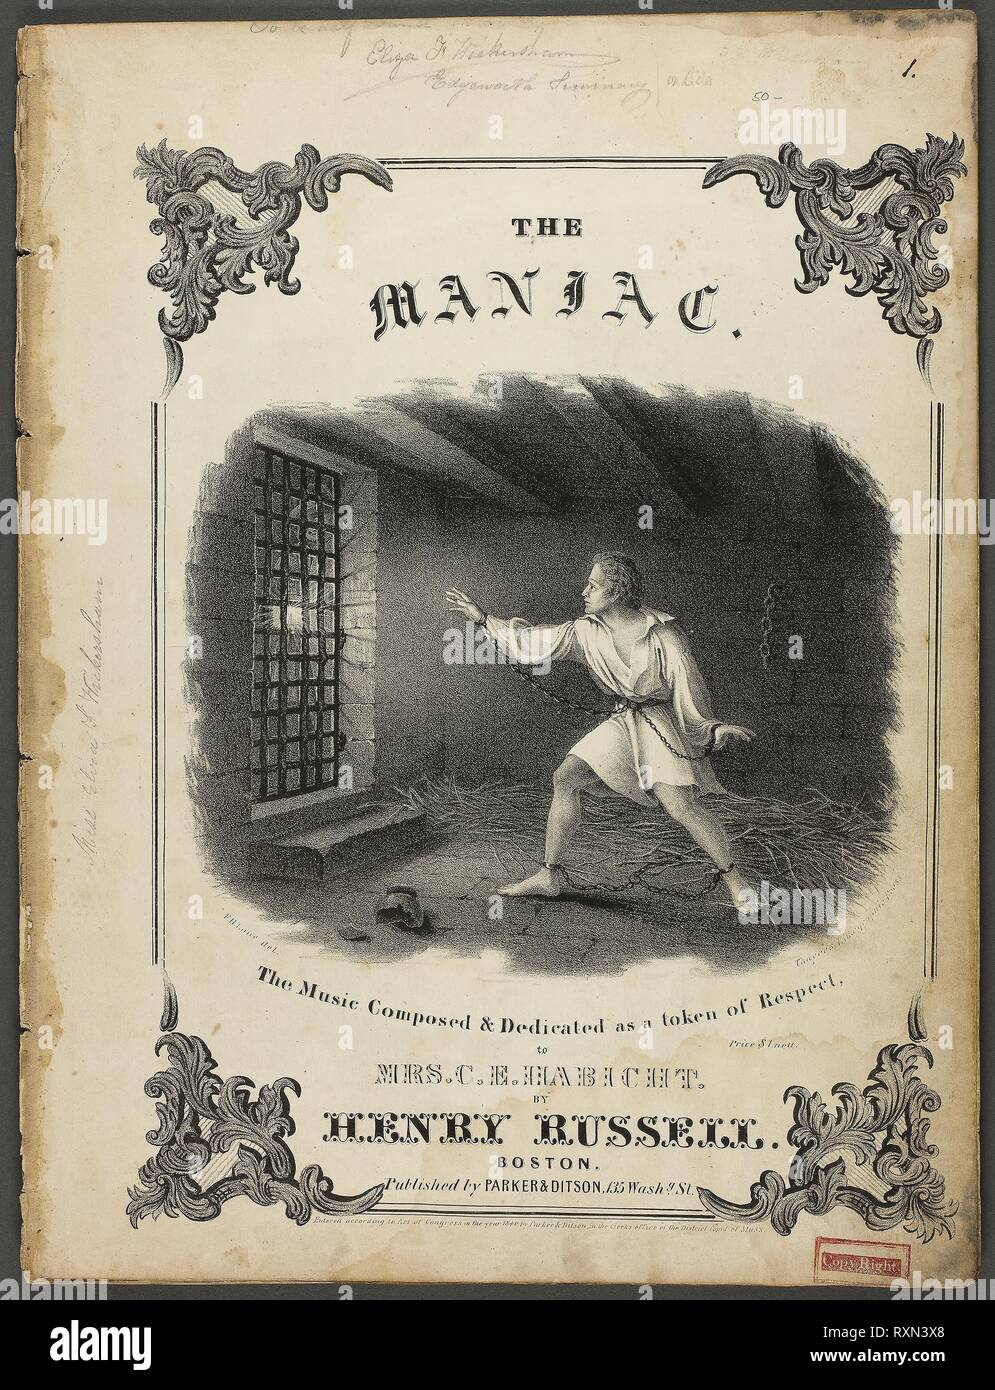 The Maniac. Fitz Hugh Lane; American, 1804-1865. Date: 1879-1880. Dimensions: 336 x 255 mm. Lithograph on cream wove paper, folded. Origin: United States. Museum: The Chicago Art Institute. Author: FITZ HENRY LANE. - Stock Image